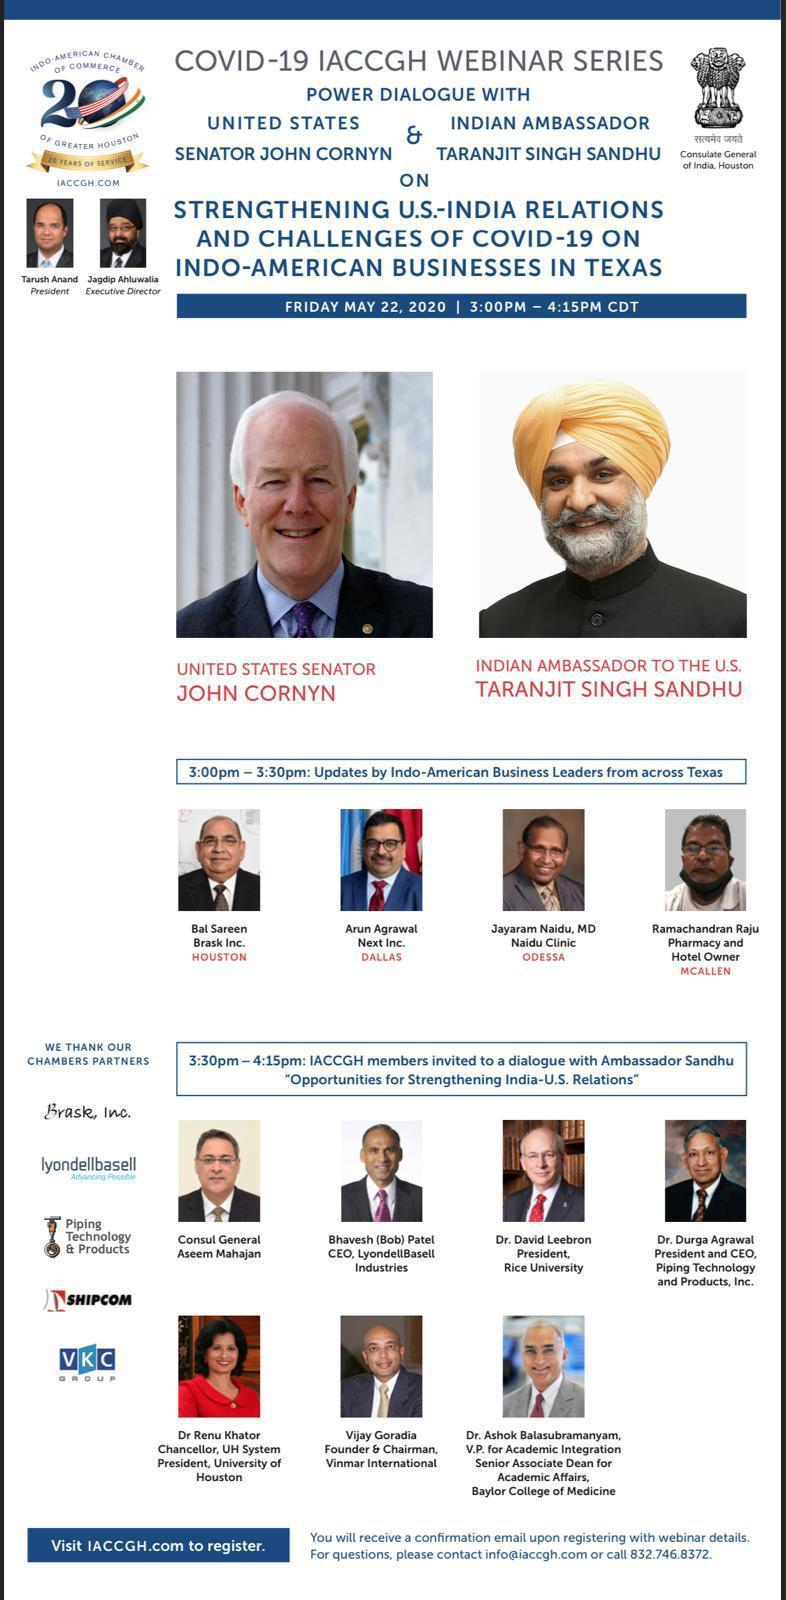 Power Dialogue with United States Senator John Cornyn & Indian Ambassador Taranjit Singh Sandhu on Strengthening U.S. - India Relations and Challenges of COVID-19 on Indo - American Businesses in Texas.